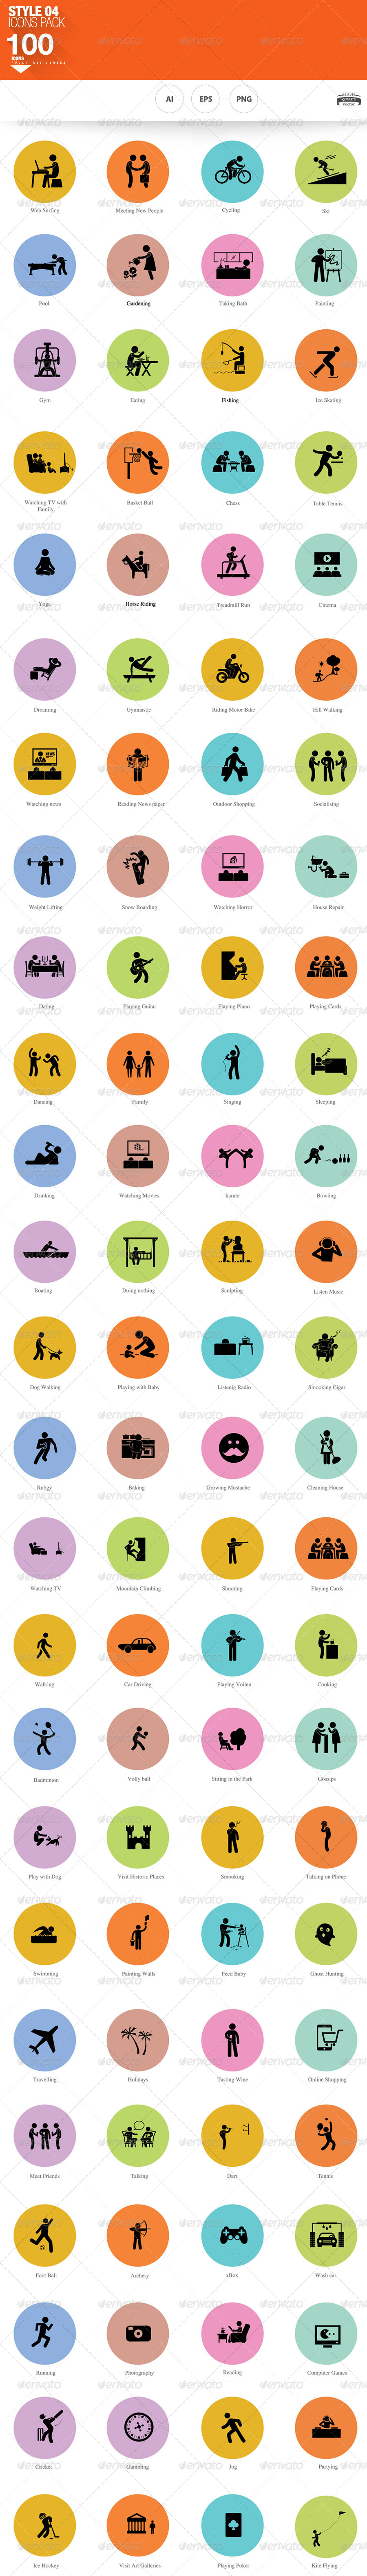 100 hobbies and interests icons by nadia 1 graphicriver 100 hobbies and interests icons